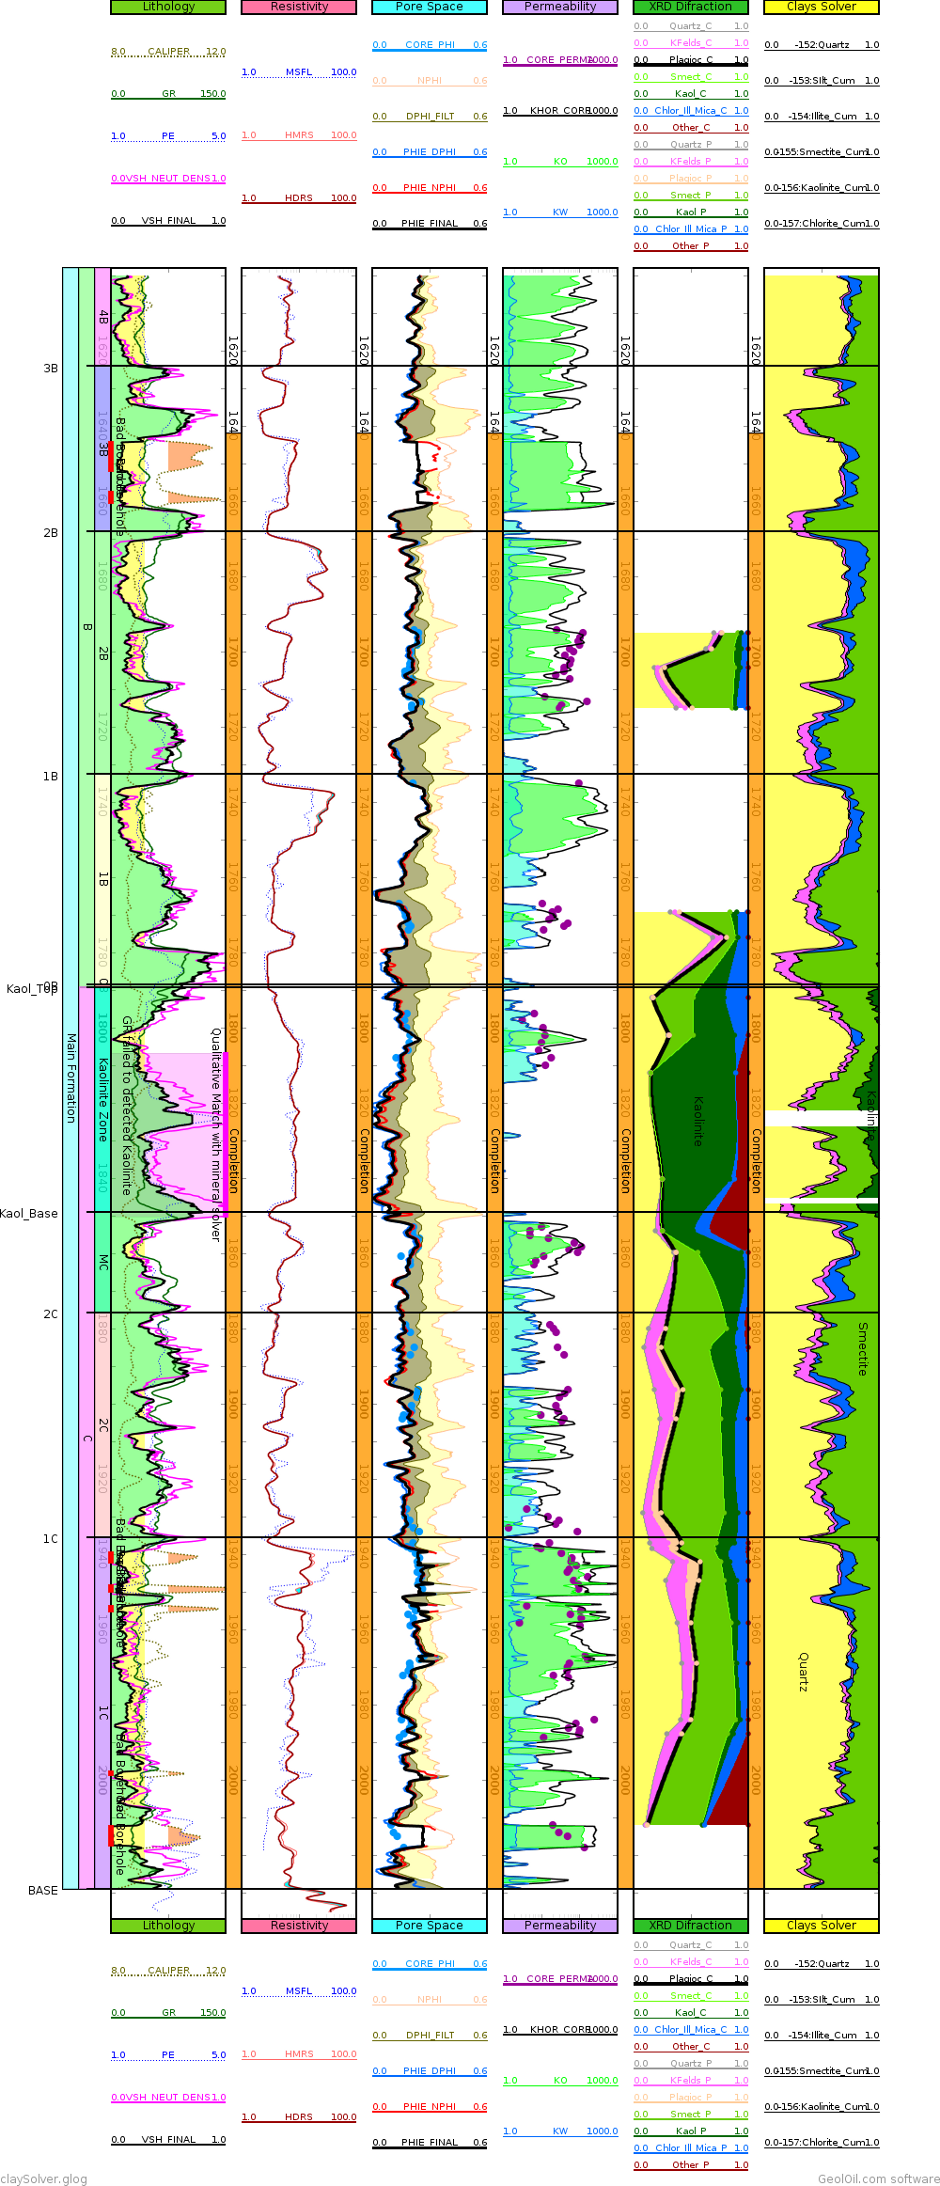 Mineral solved log plot for quartz, silt, and clay minerals: illite, smectite, kaolinite, and chlorite